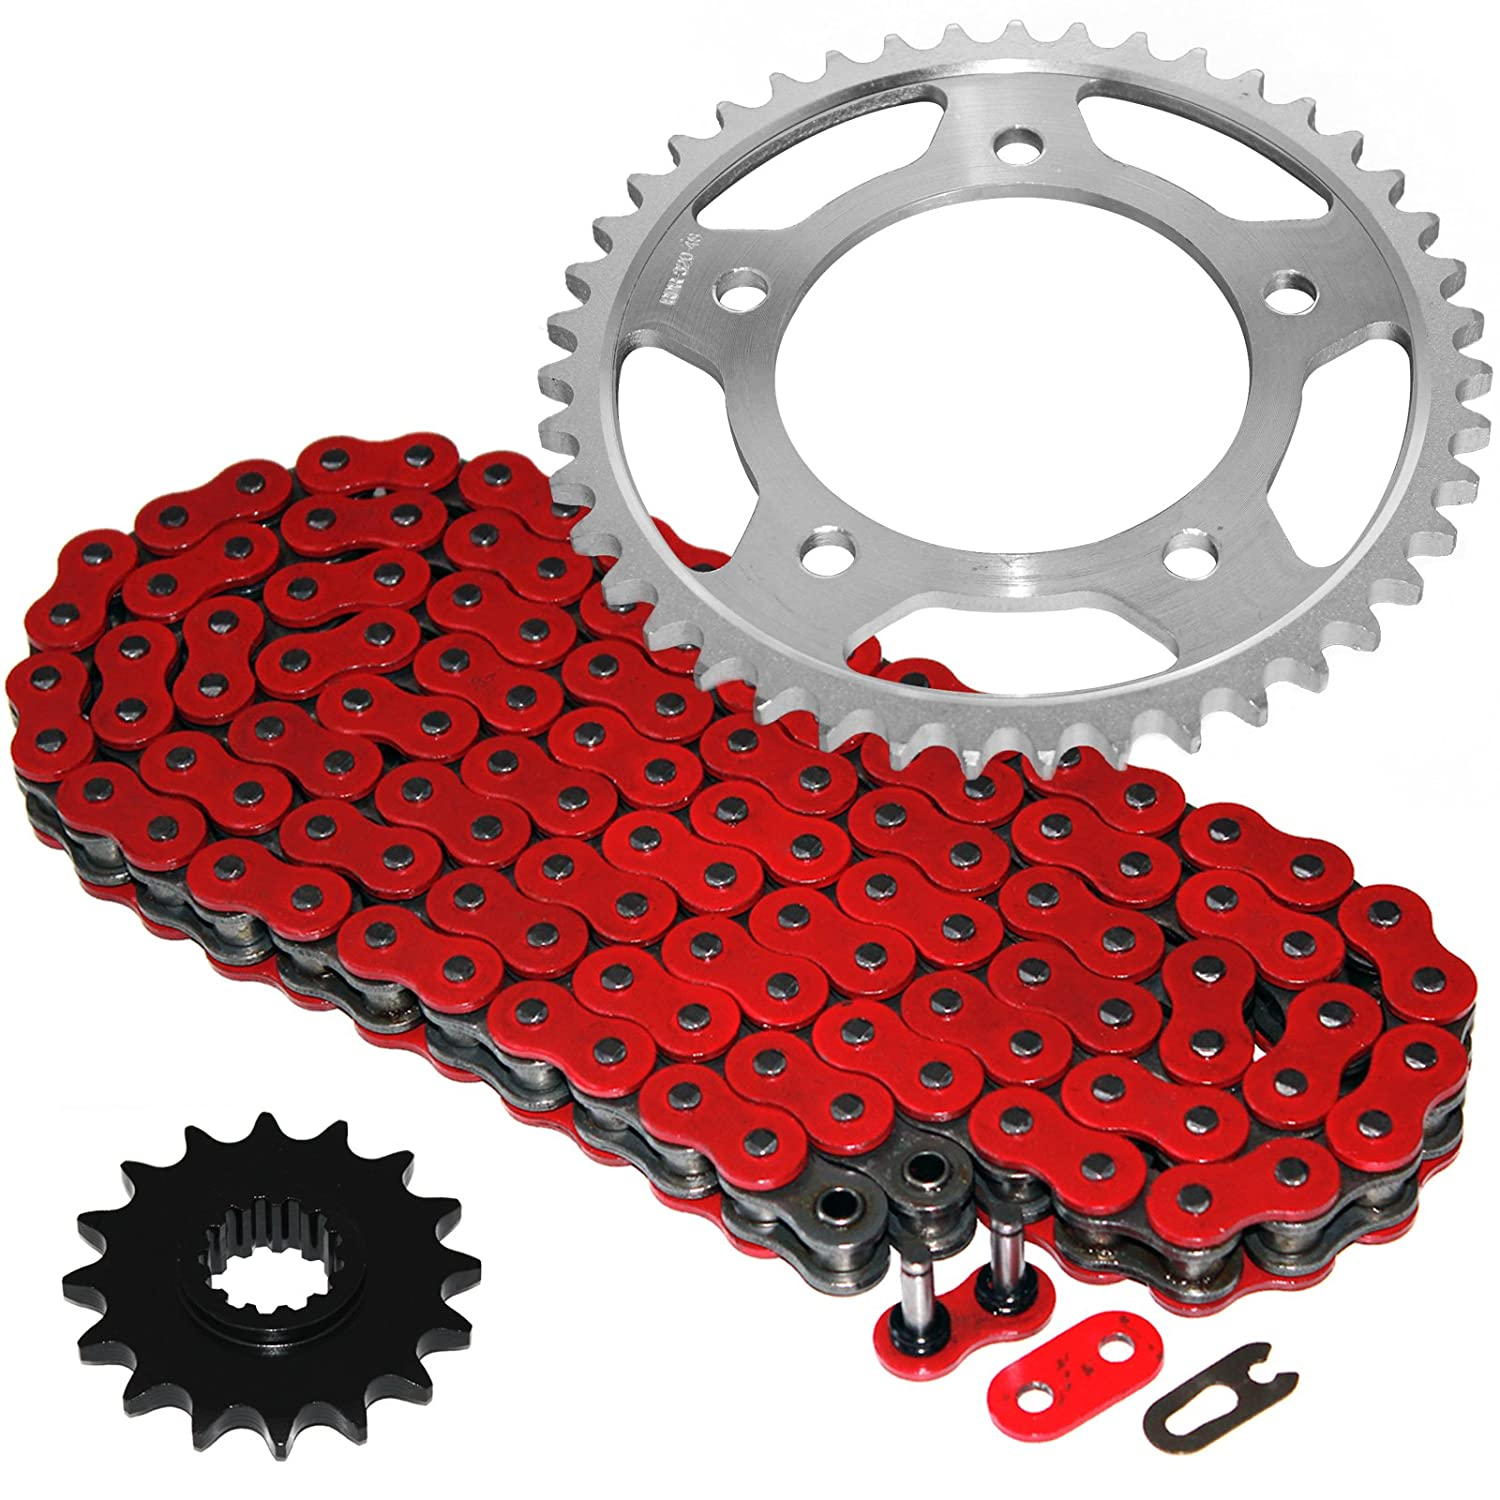 Caltric Red O-Ring Drive Chain /& Sprockets Kit Fits HONDA 900RR CBR900RR CBR-900RR 1996-1999